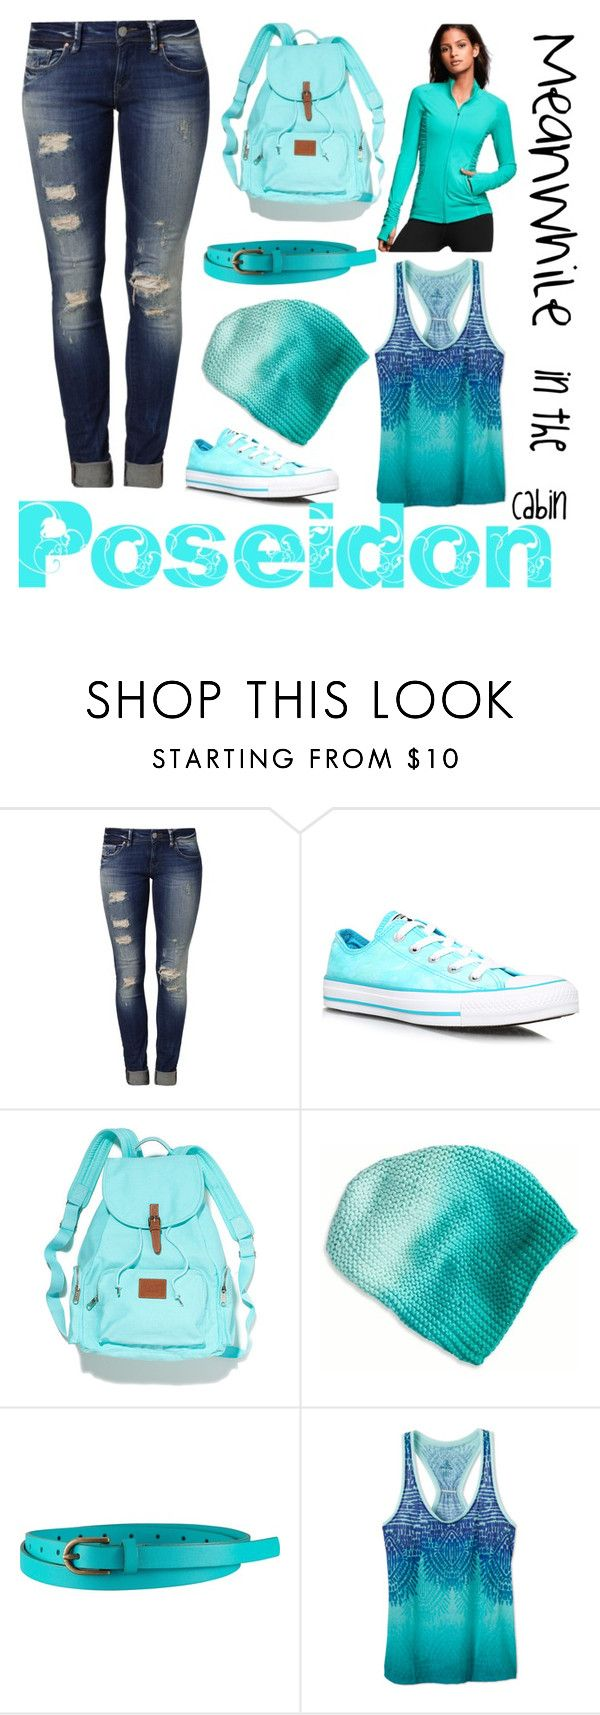 """""""Percy Jackson #4-POSEIDON CABIN"""" by vivrm ❤ liked on Polyvore featuring Mavi, Converse, Victoria's Secret PINK, American Eagle Outfitters, Uniqlo and Victoria's Secret"""